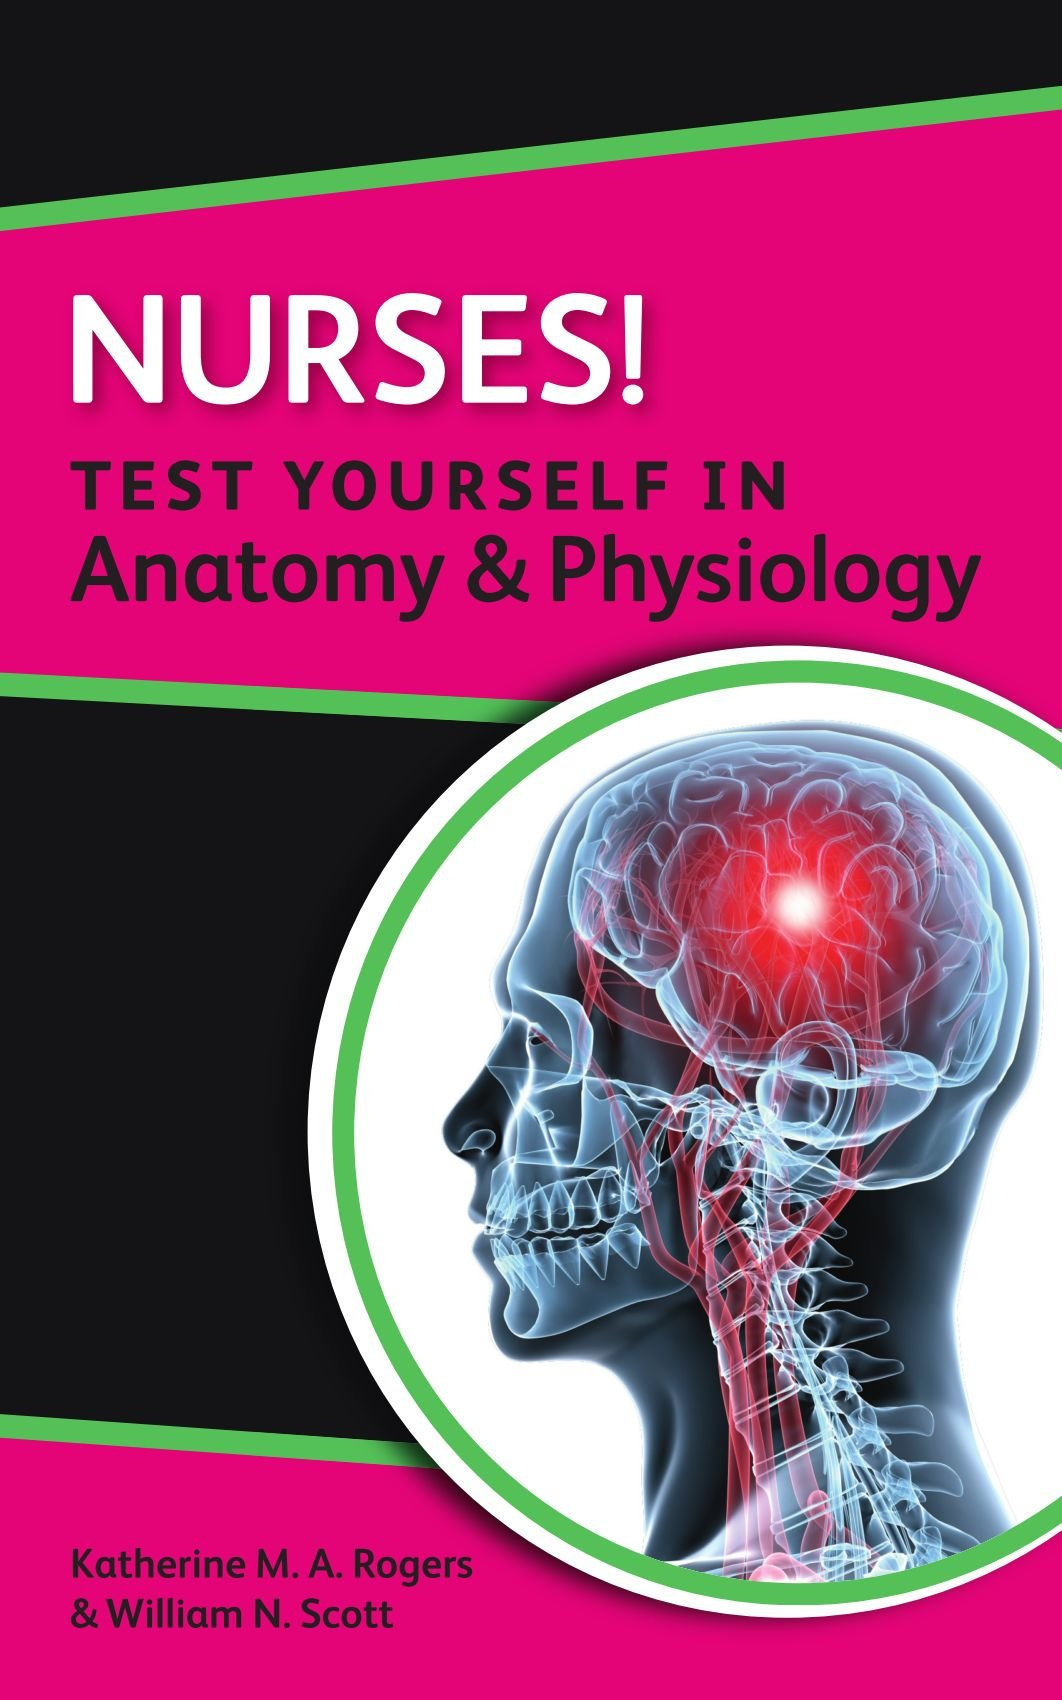 Nurses! Test Yourself In Anatomy & Physiology (Nursus! Test Yourself ...